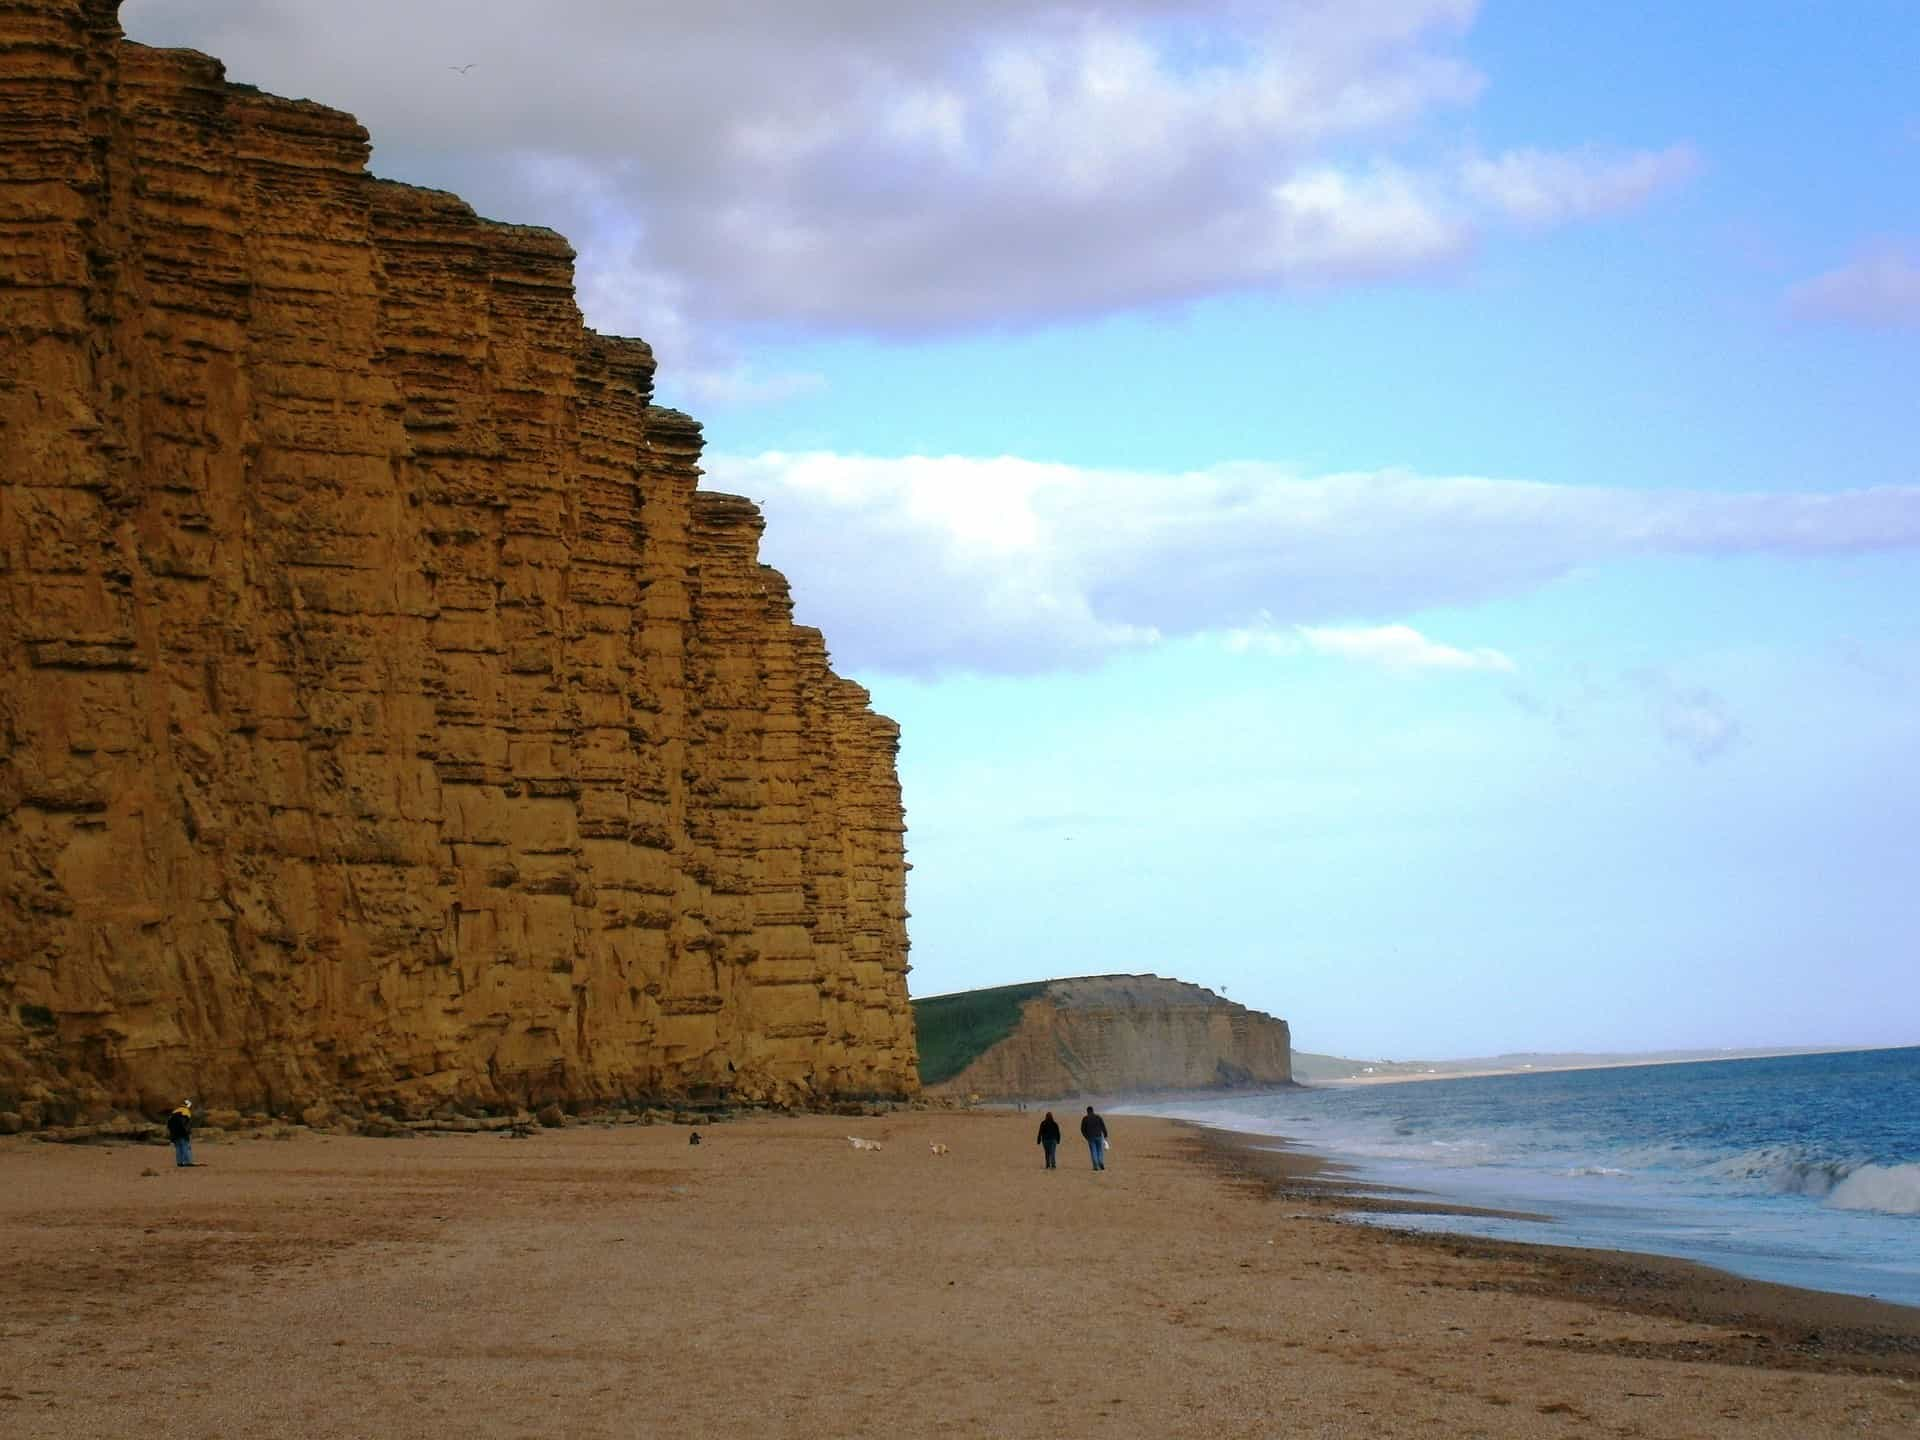 Dramatic cliffs at Bridport the Broadchurch location on the Jurassic Coast of England